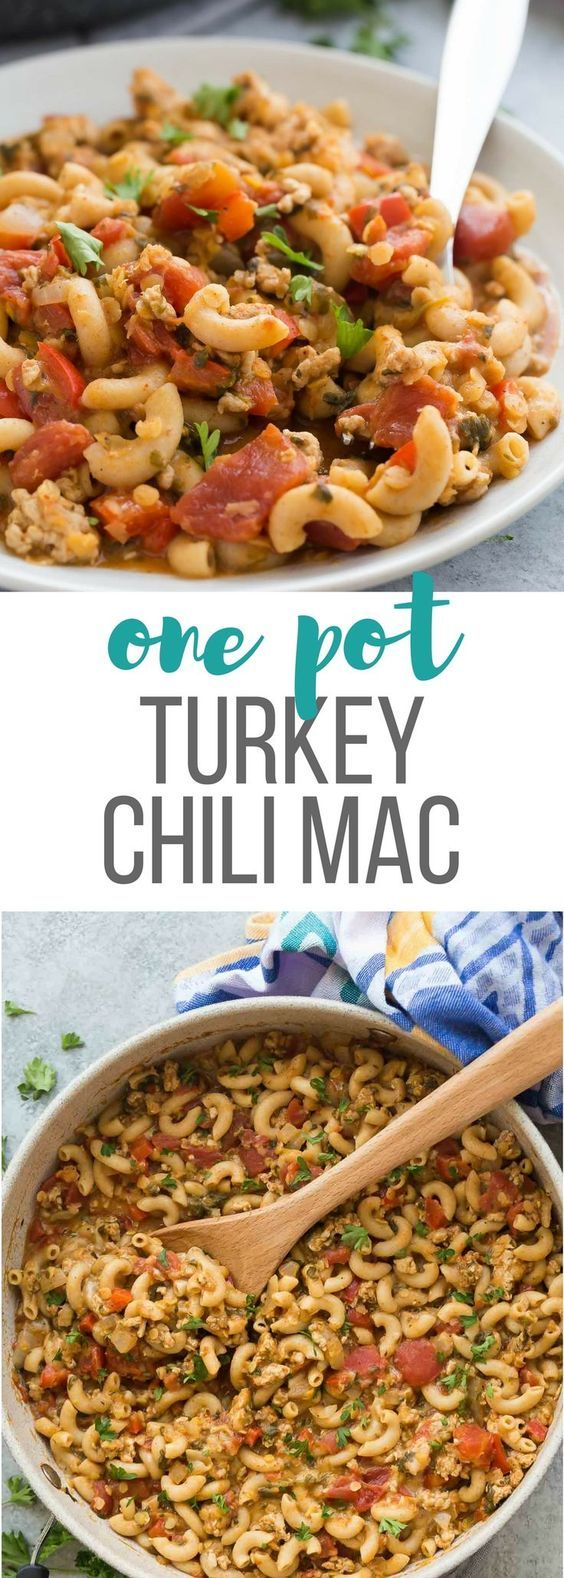 This One Pot Turkey Chili Mac is an easy, healthy weeknight dinner recipe that's made in just one pan! Loaded with vegetables and lentils for extra protein and fibre! Includes step by step recipe video. | one pot meal | one pan | healthy dinner | high protein | high fiber | ground turkey | pasta recipe | weeknight meal | 30 minutes #onepotpasta #onepotmeal #onepanmeal #healthy #diet